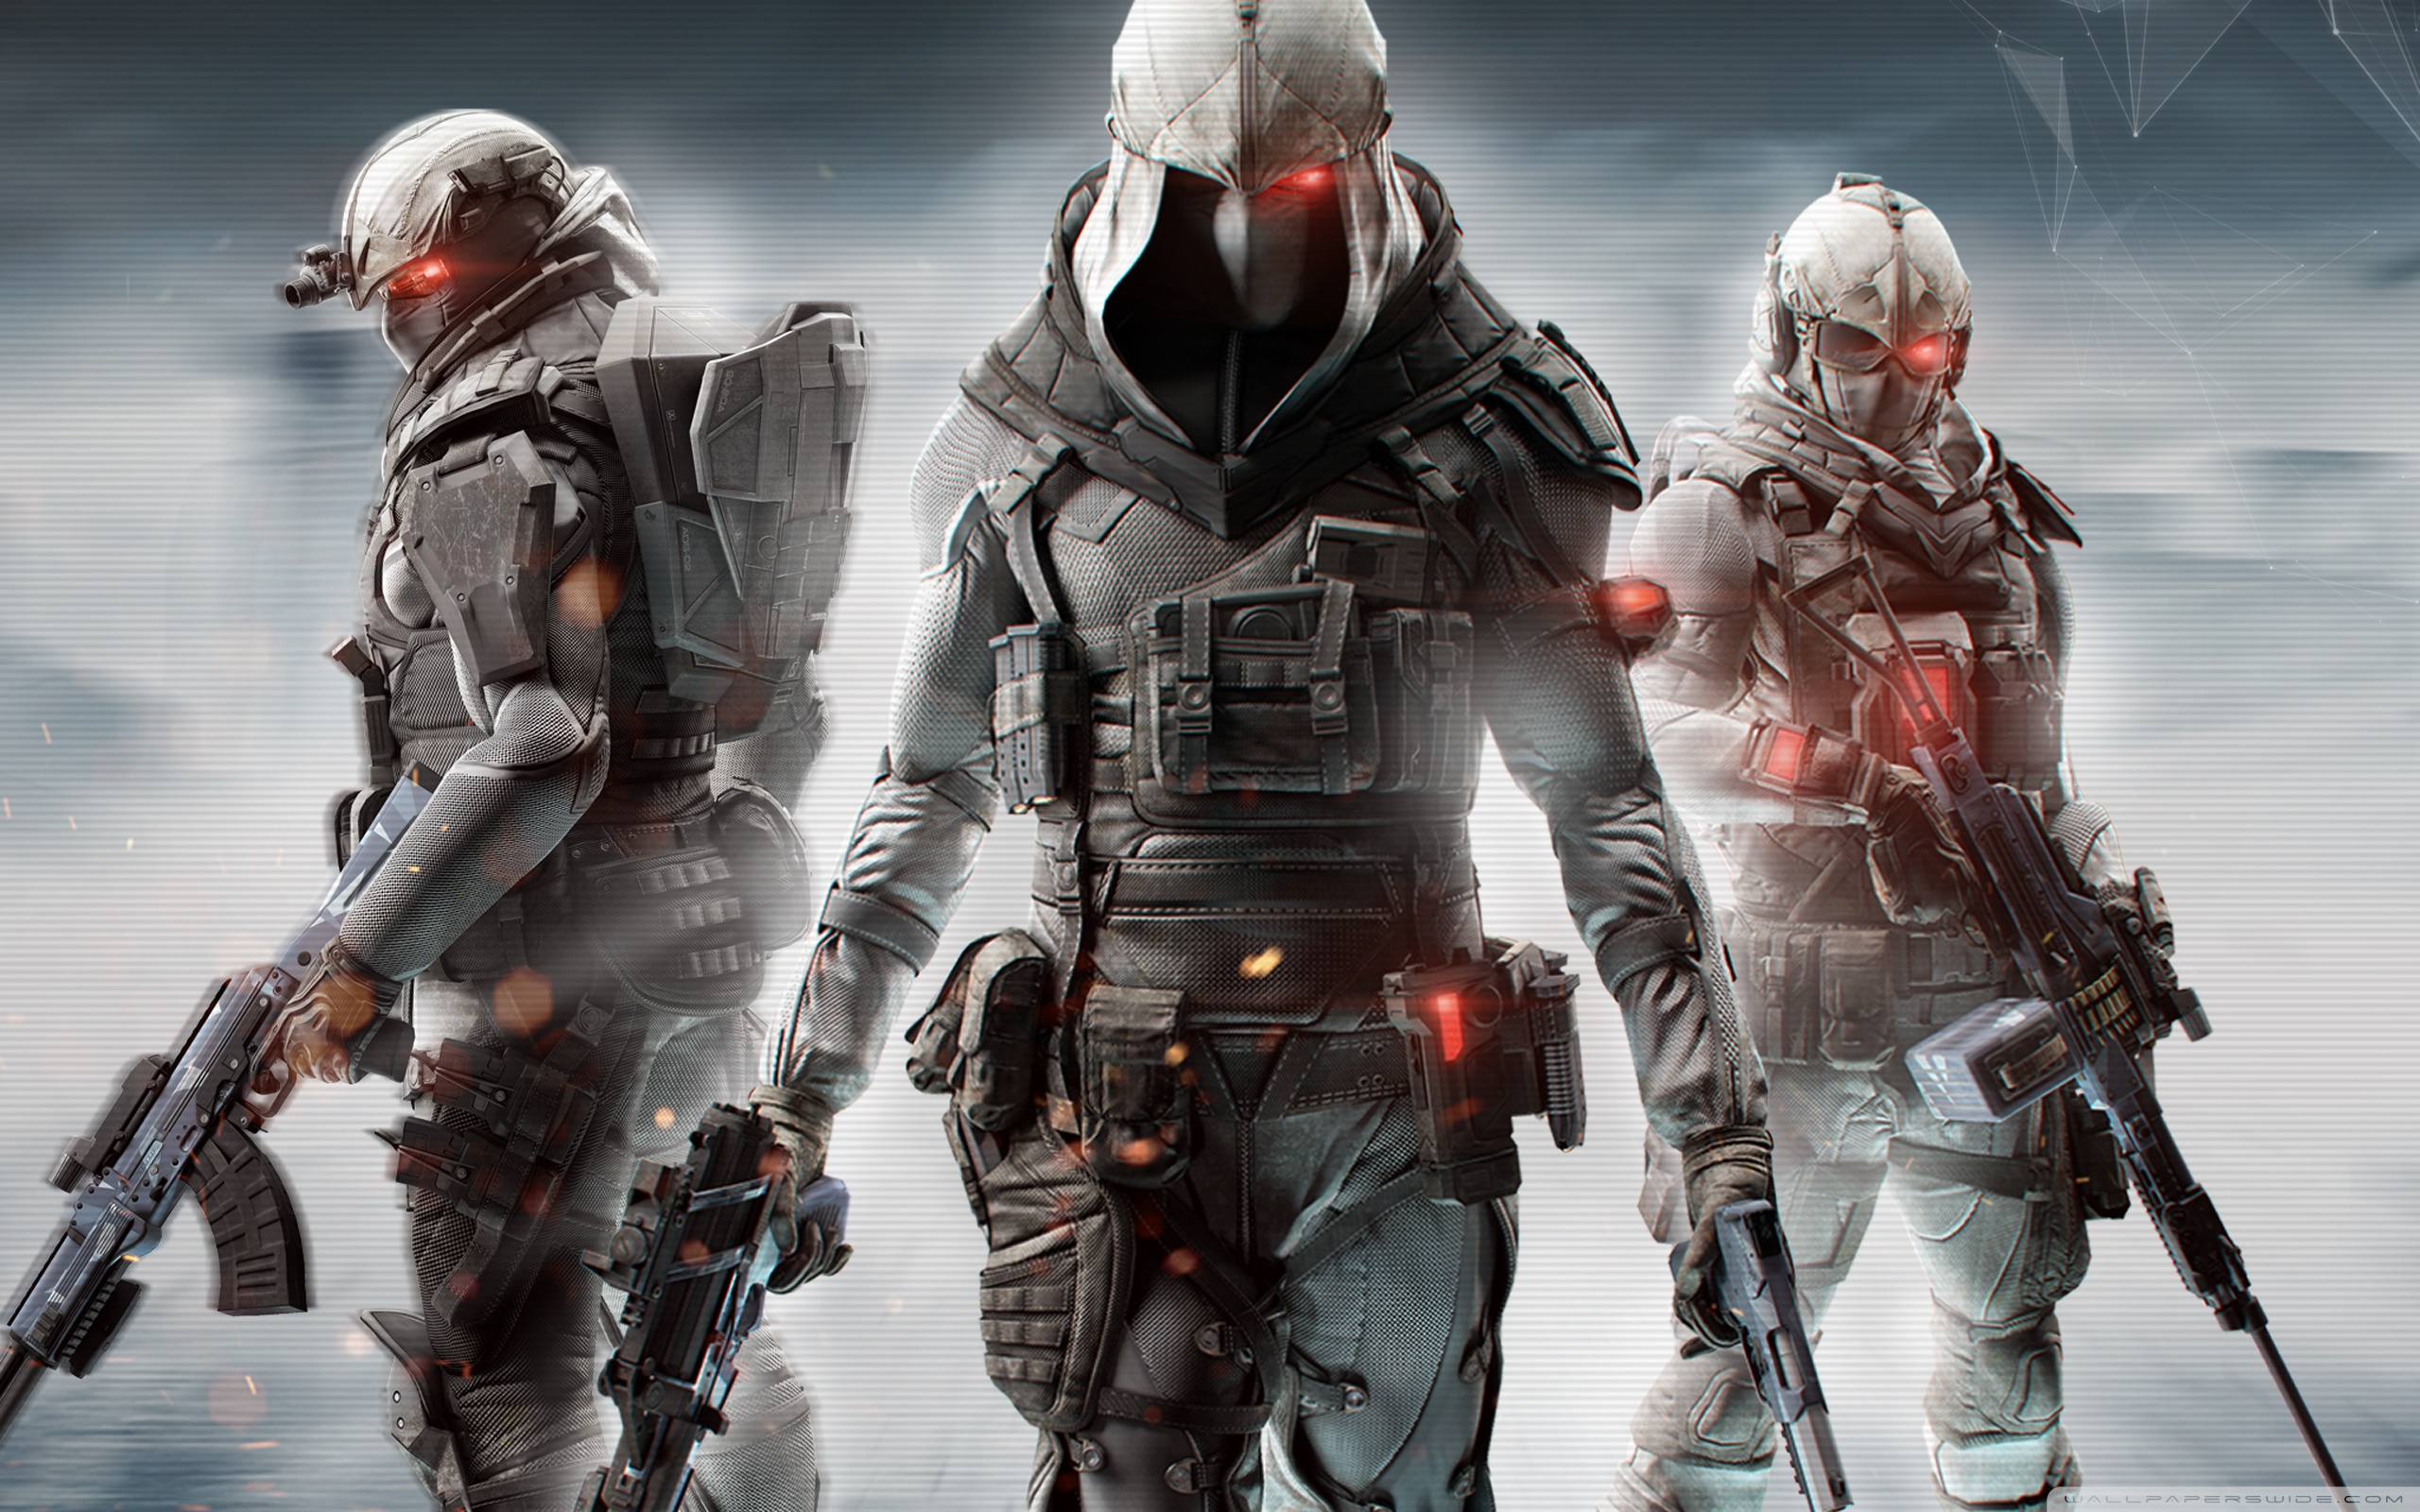 Download Free WallpaperGhost Recon Phantoms The Assassins Creed Pack Arctic Complete   Android